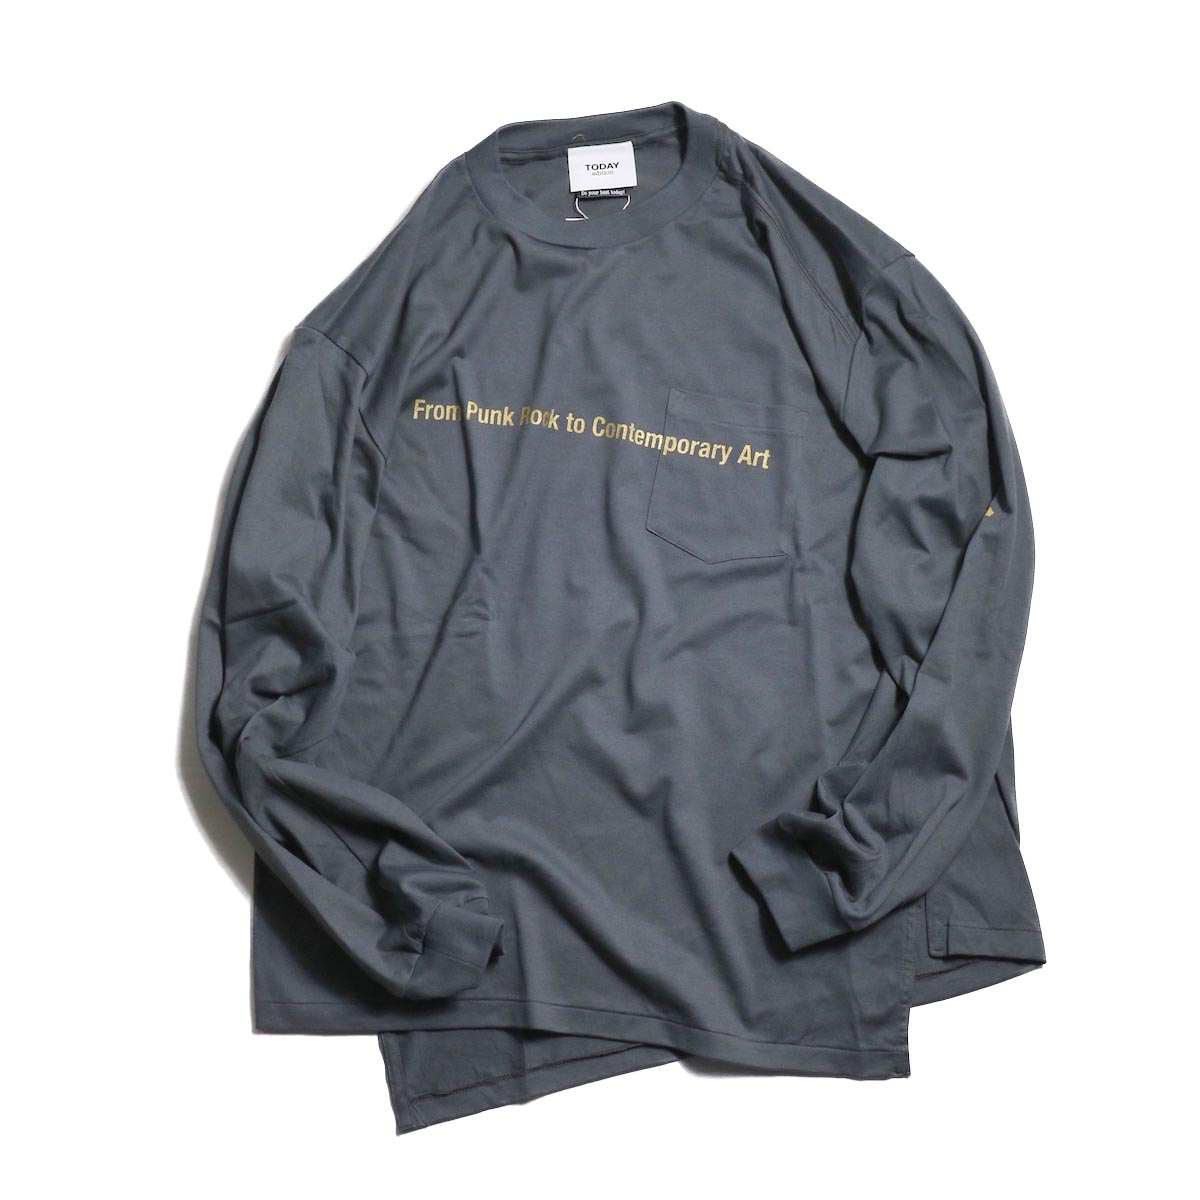 TODAY edition / message pocket  tee -Gray